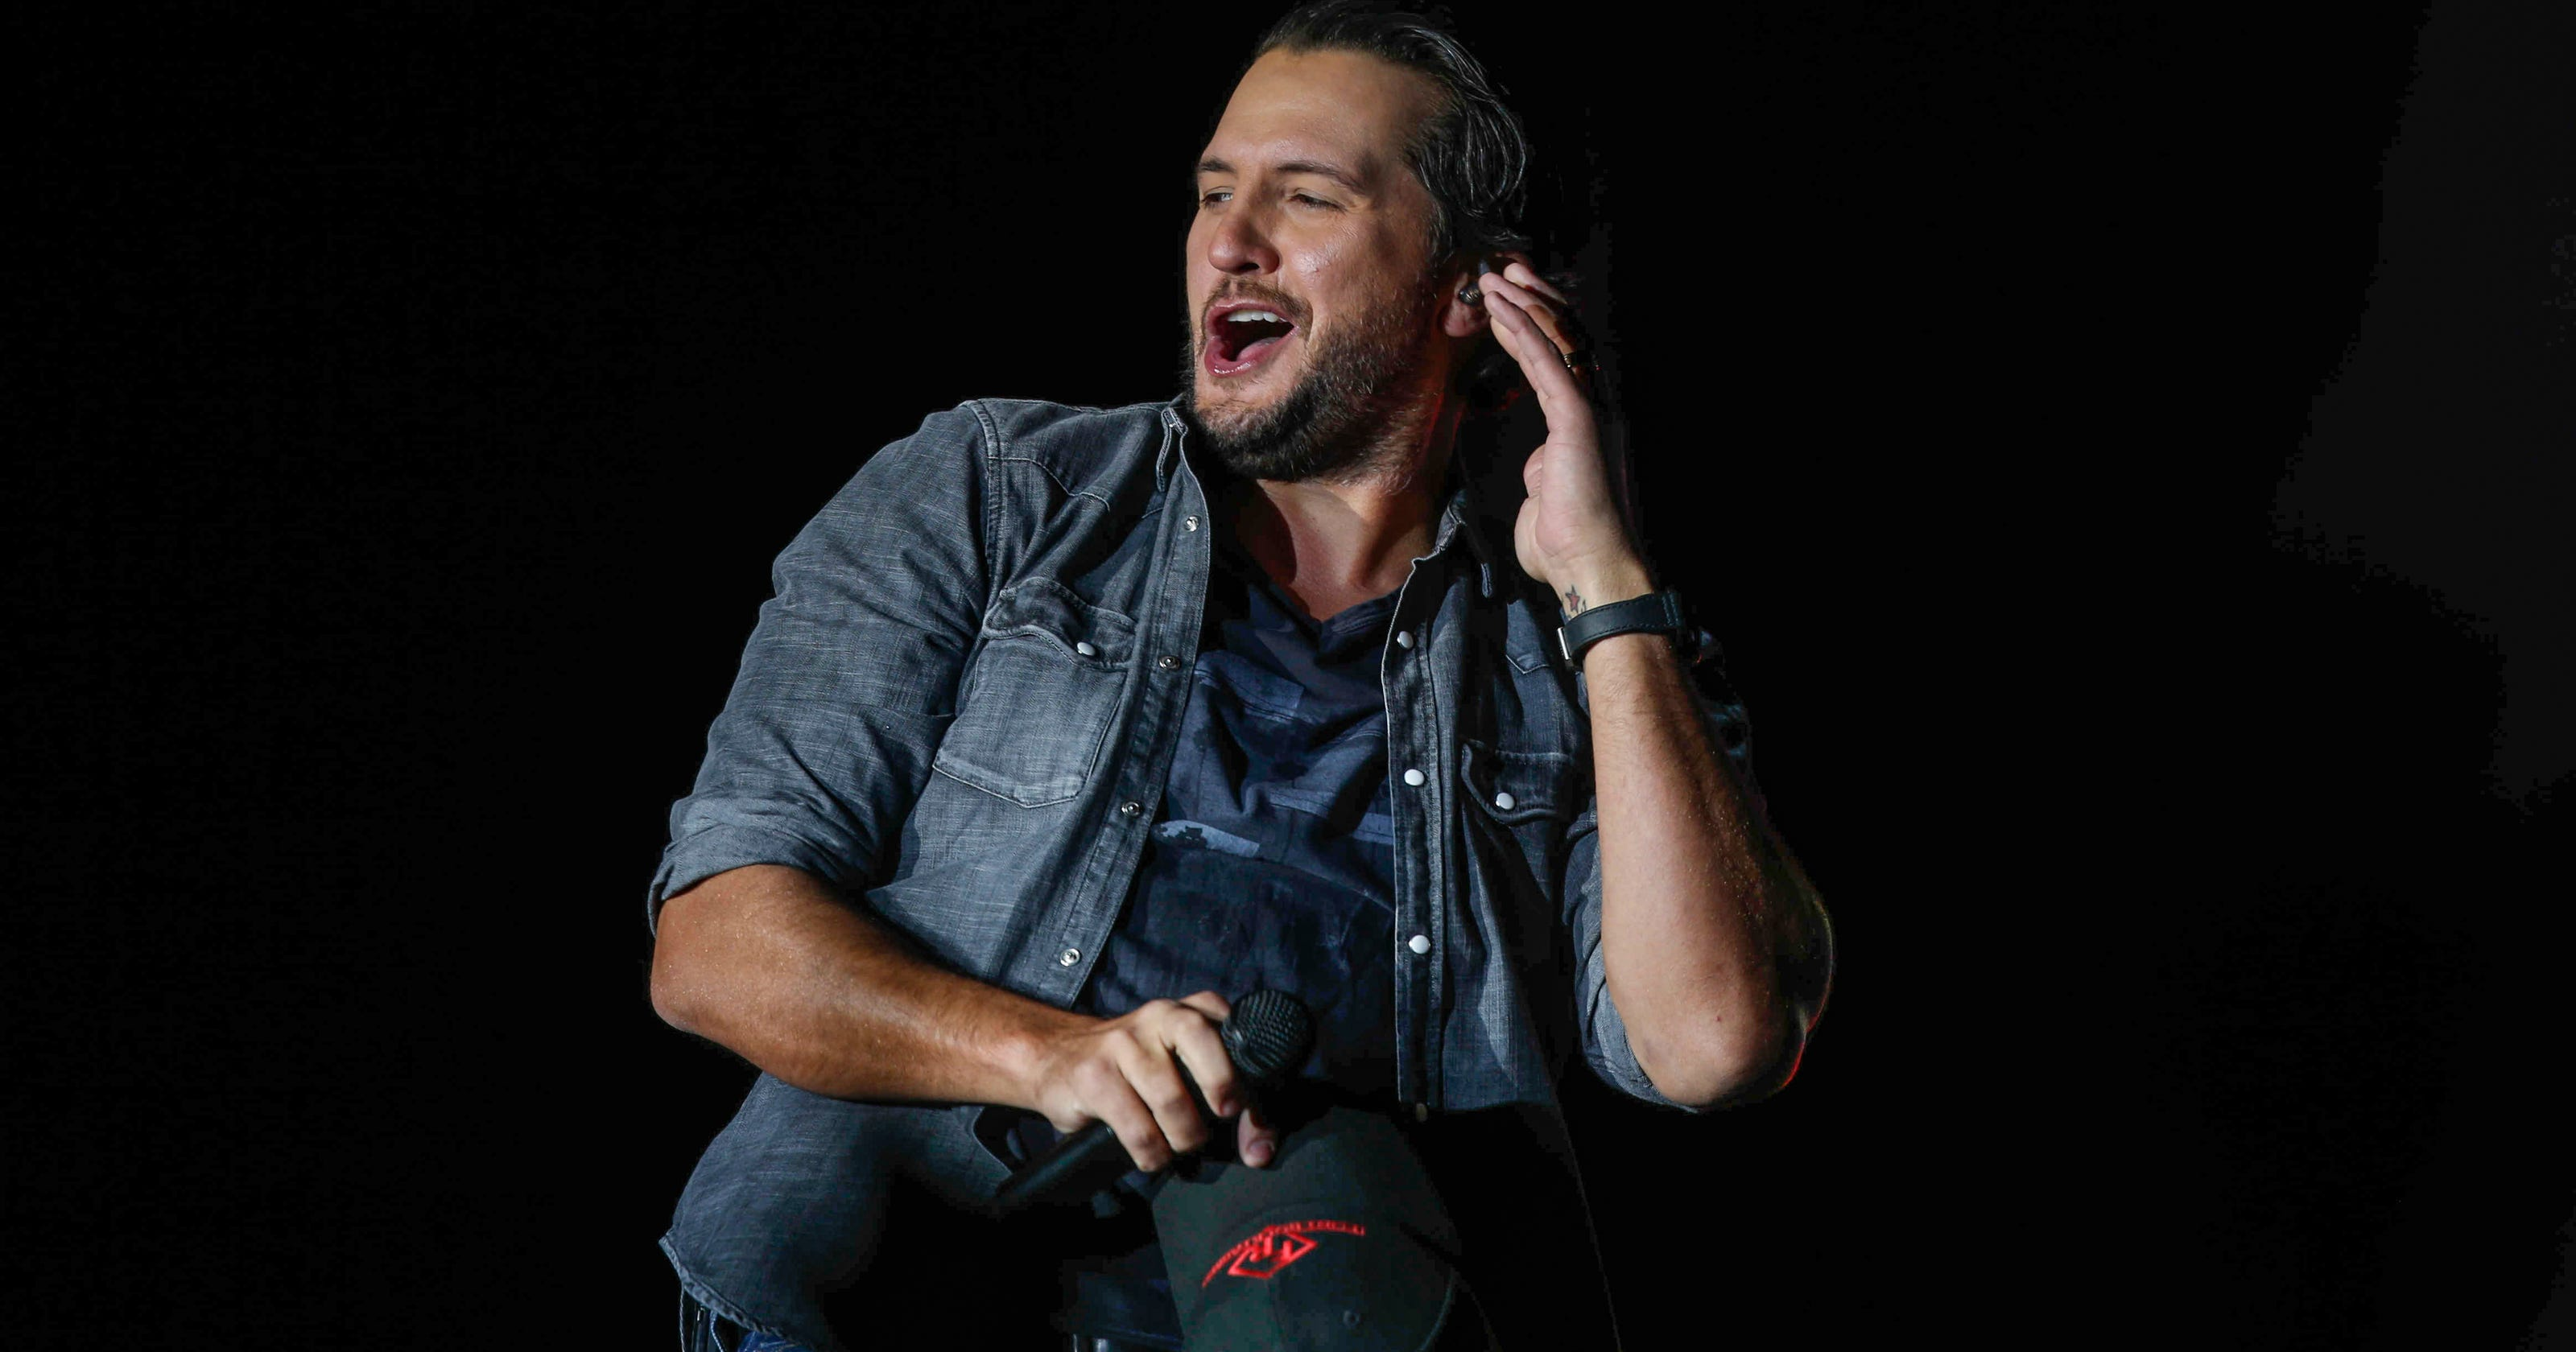 Luke bryan brings an unbelievable party to iowa farm tour show m4hsunfo